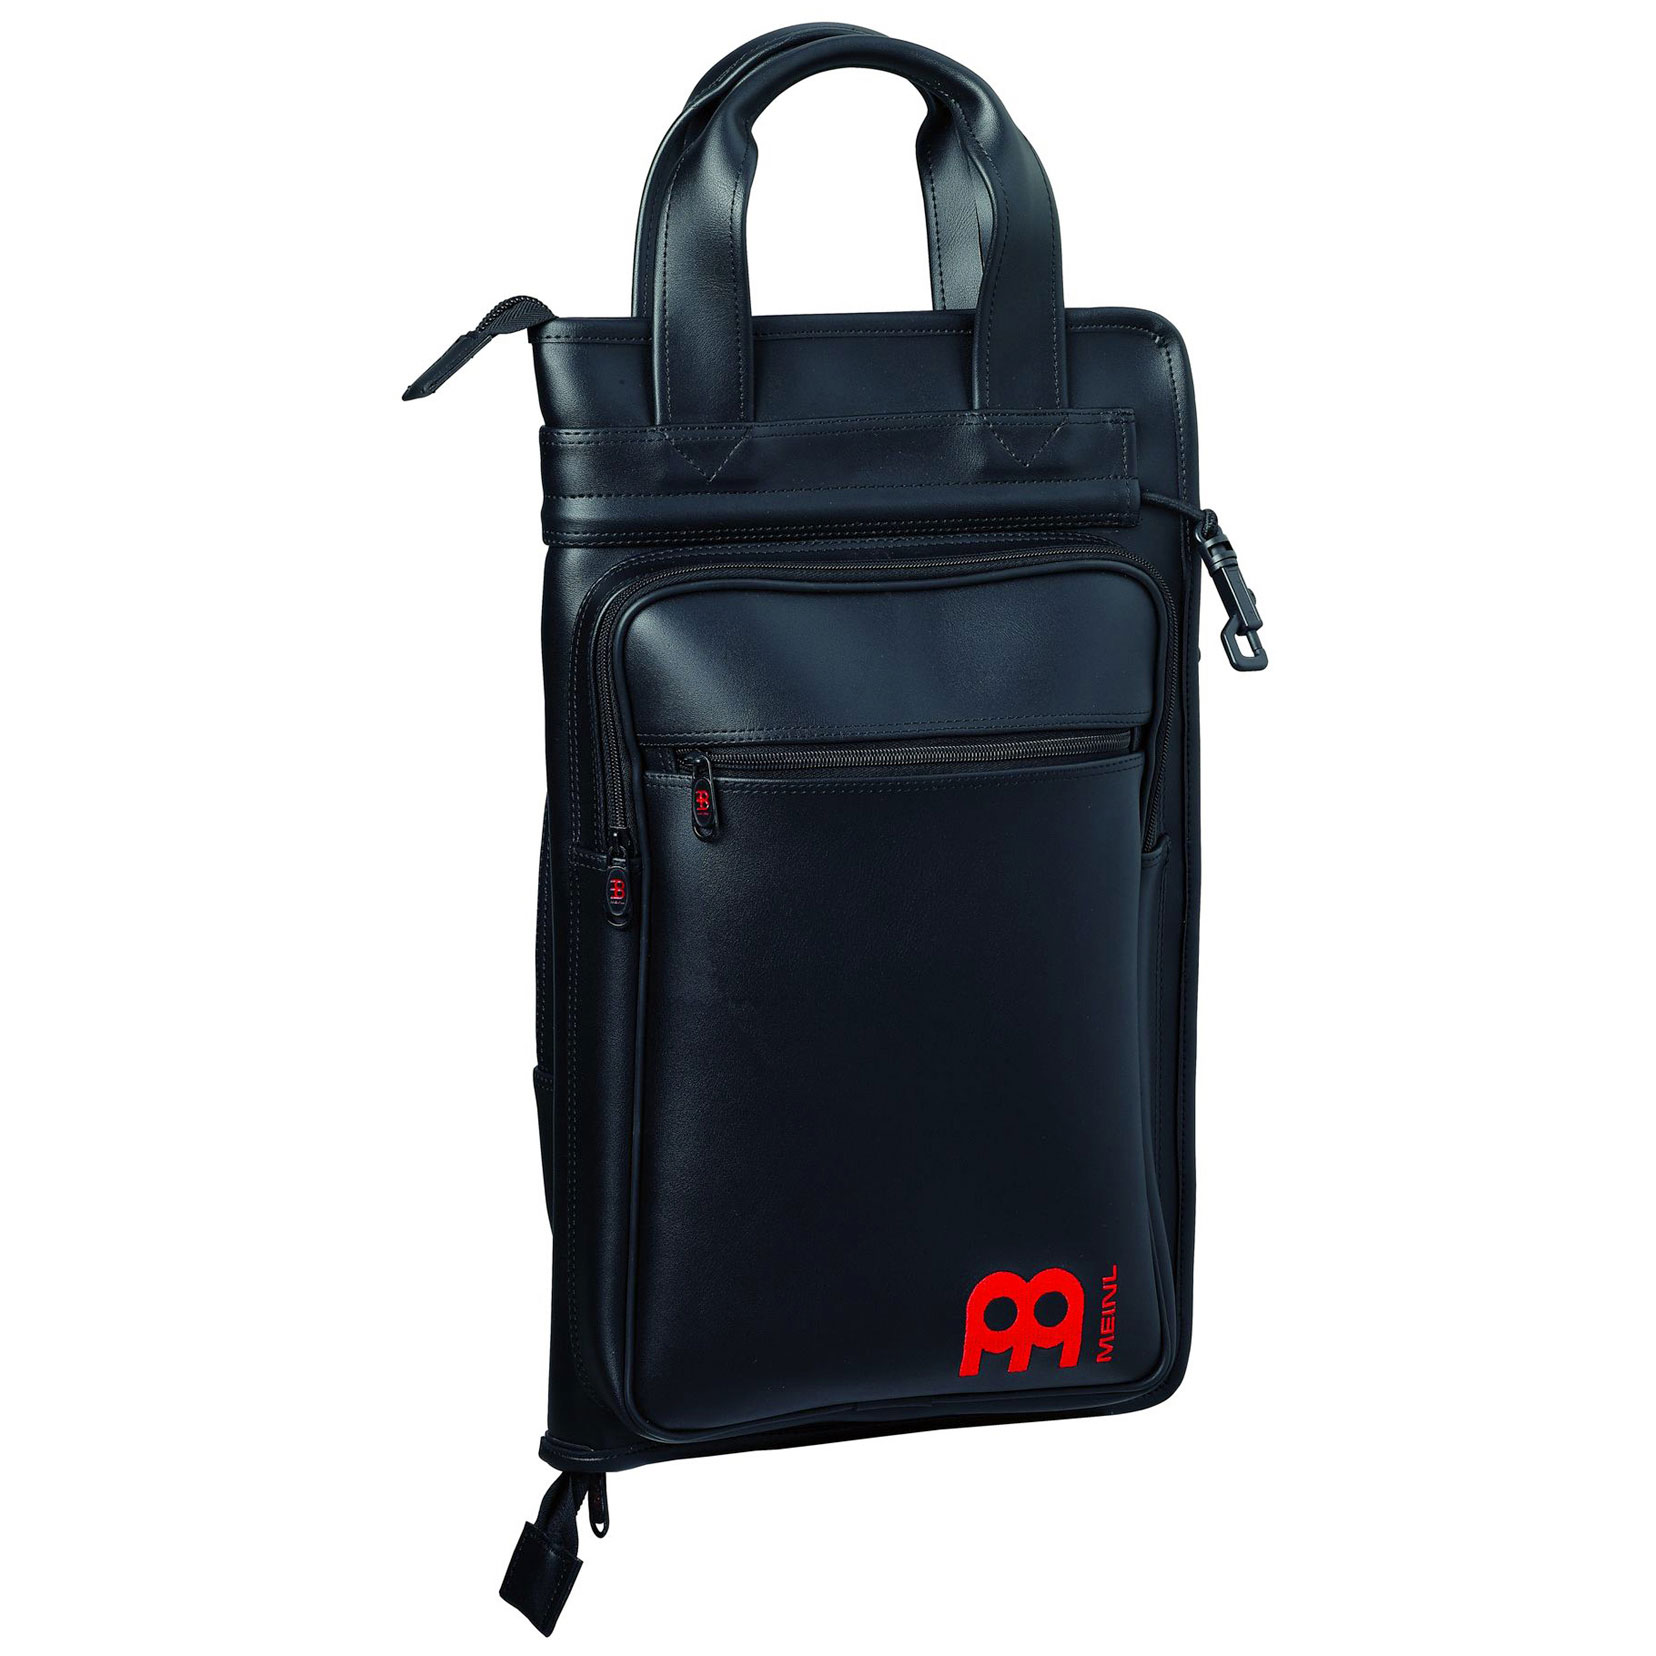 Meinl Deluxe Stick Bag